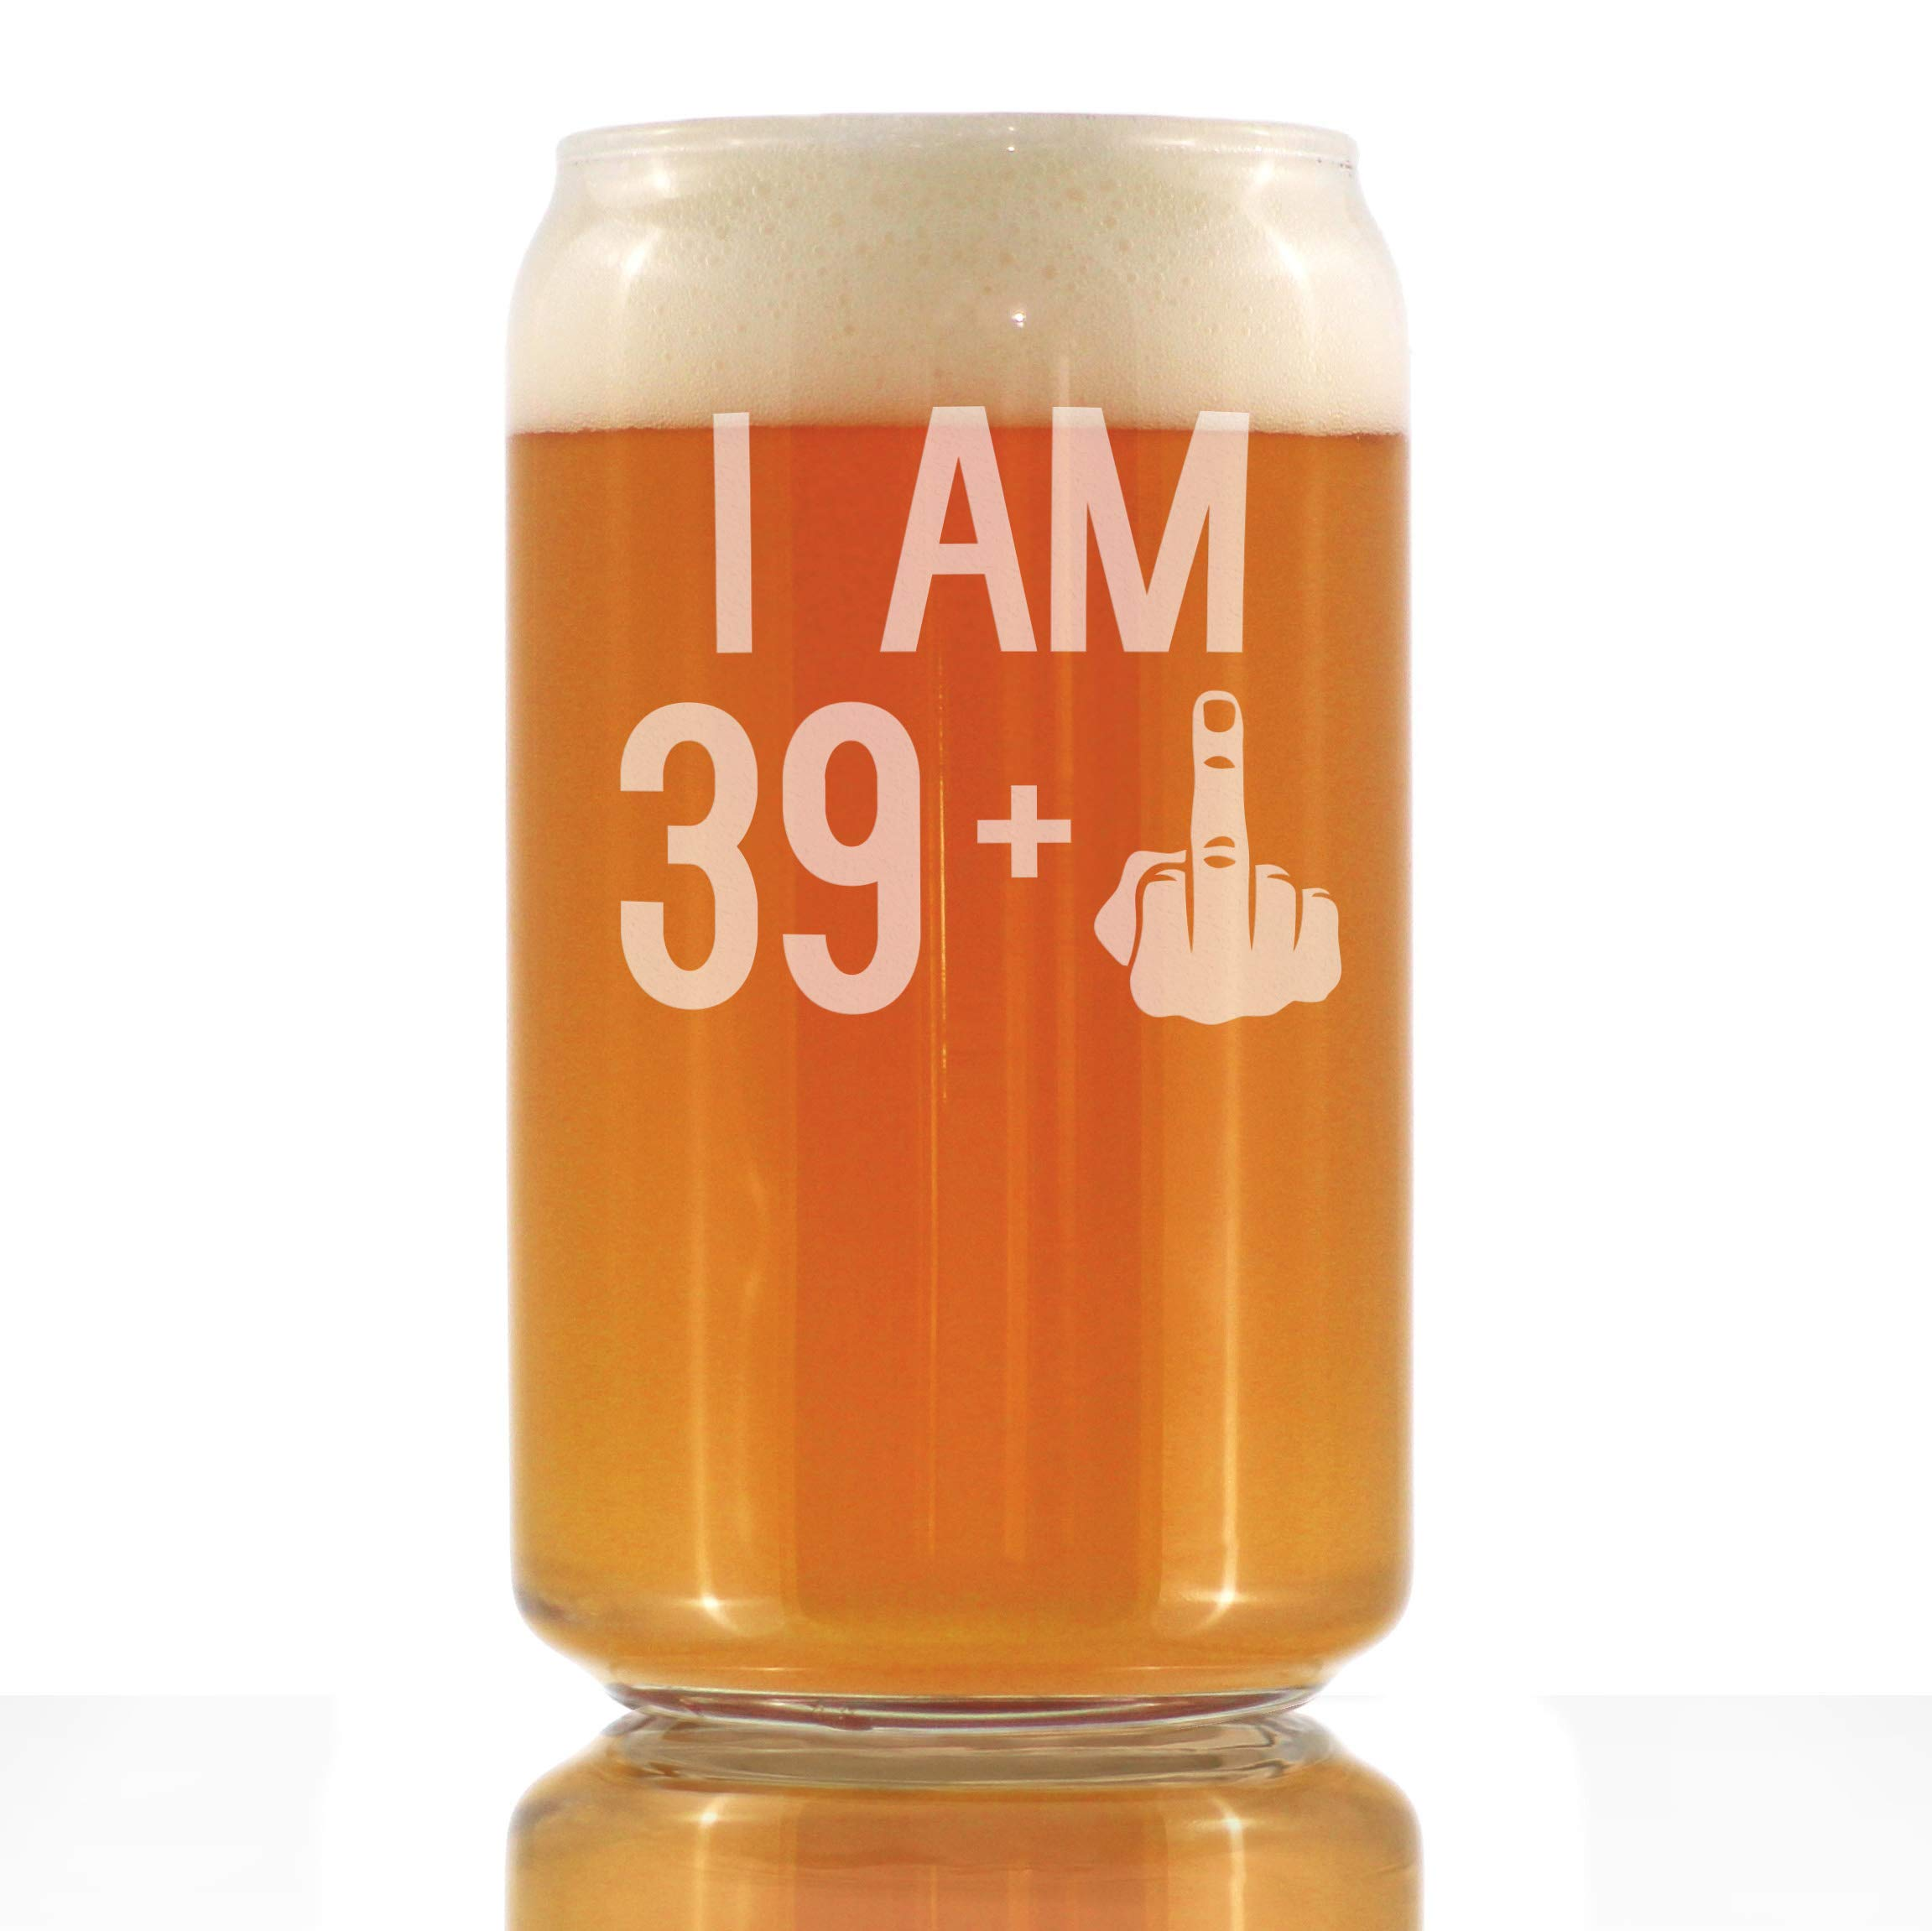 I Am 39 + 1 Middle Finger - 16 oz Beer Can Pint Glass - Funny 40th Birthday Gifts for Men Turning 40